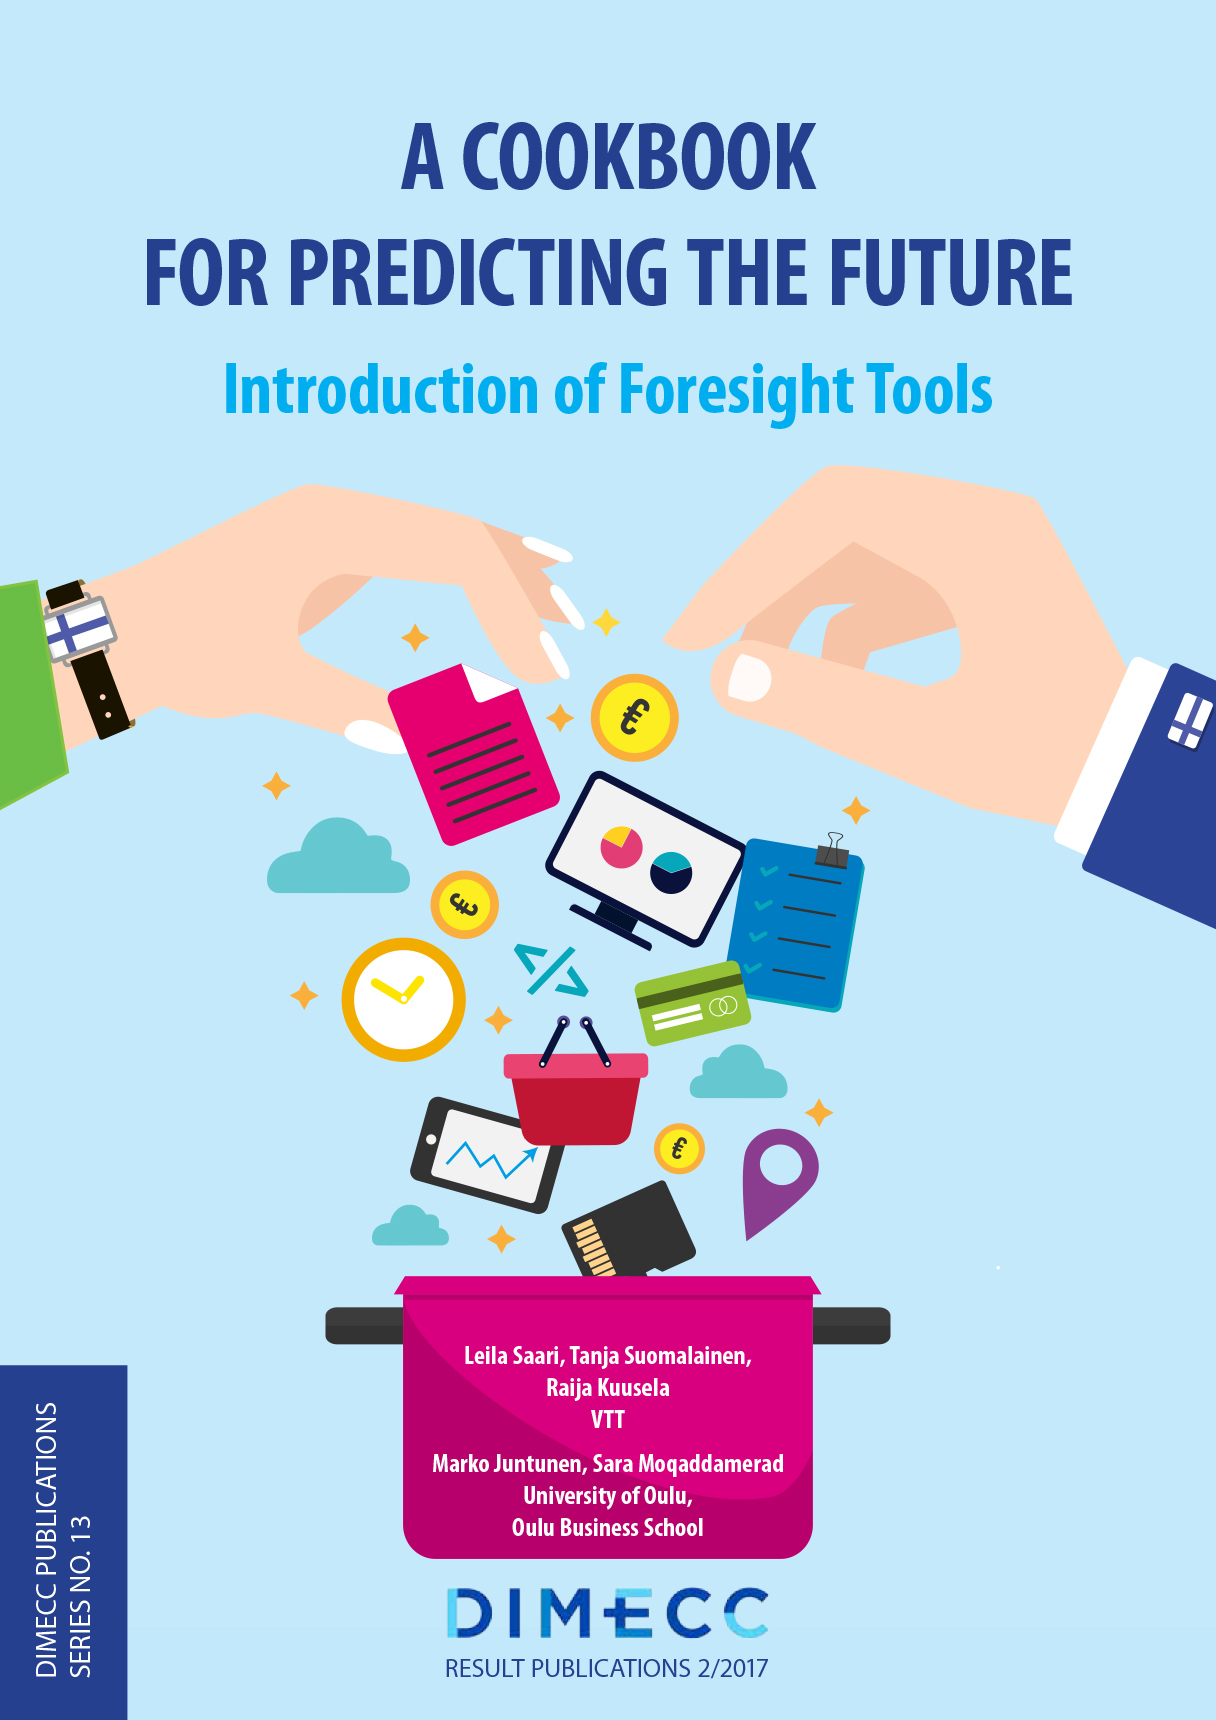 n4s-cookbook-for-predicting-the-futures